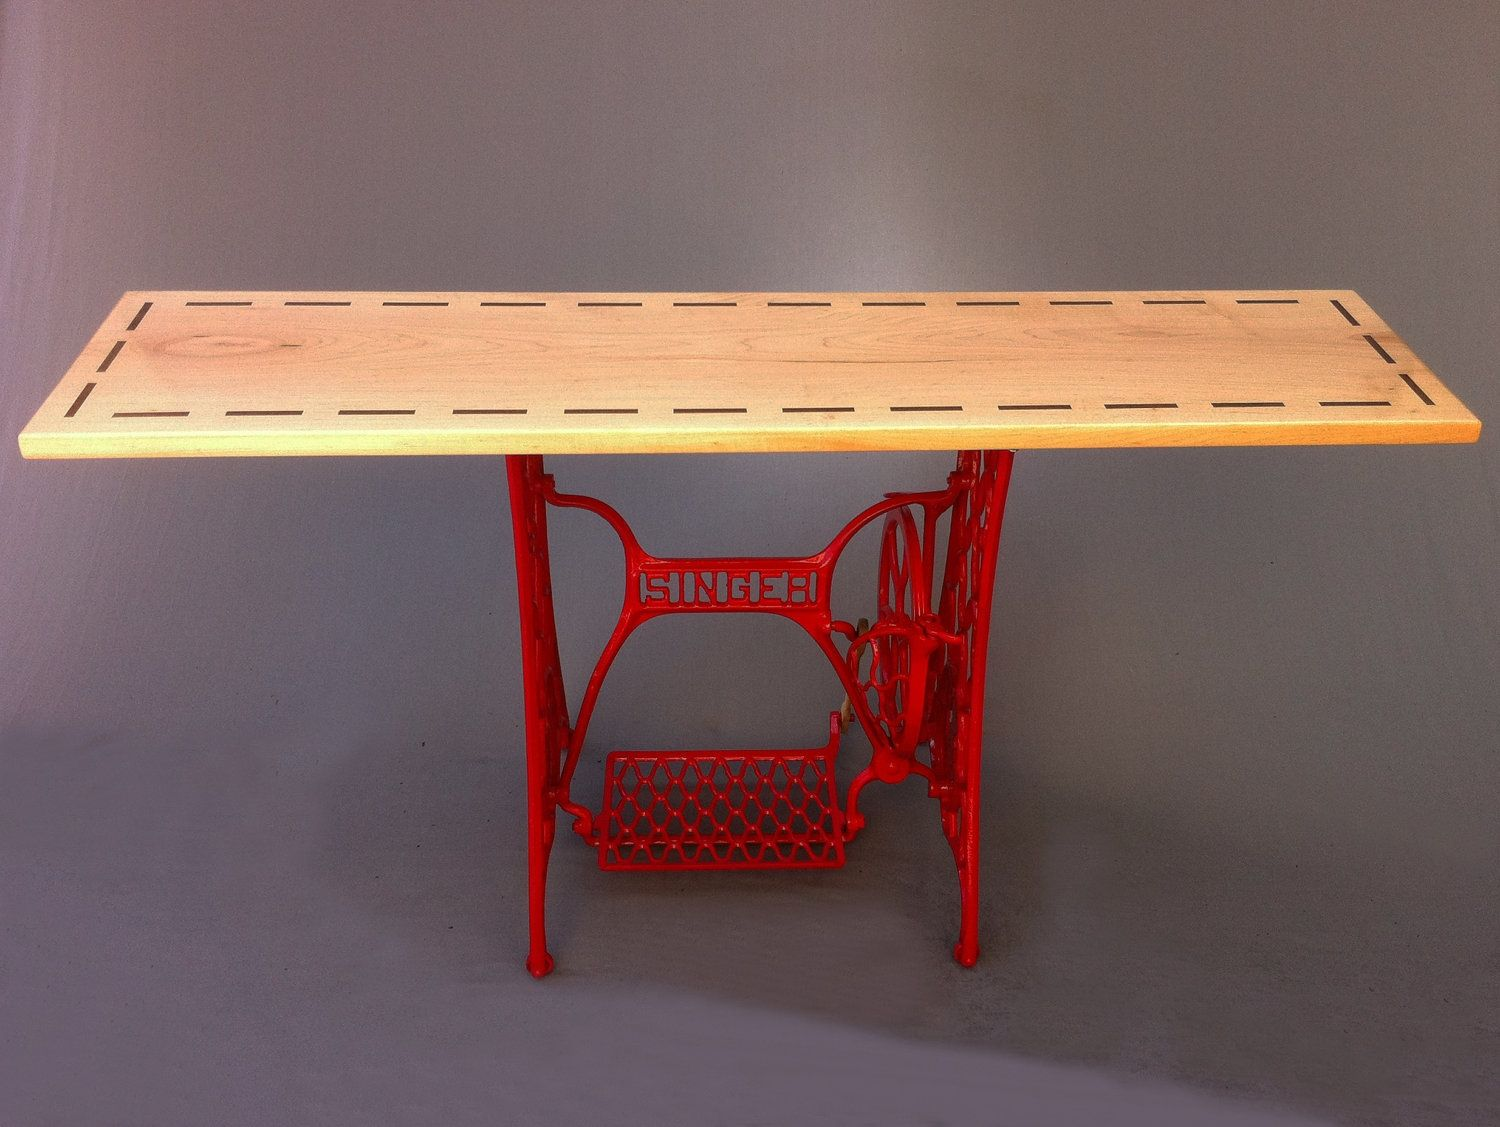 Buy a hand crafted modern console tablered vintage singer sewing buy a hand crafted modern console tablered vintage singer sewing machine base hall entry table made to order from studio1212 custommade watchthetrailerfo